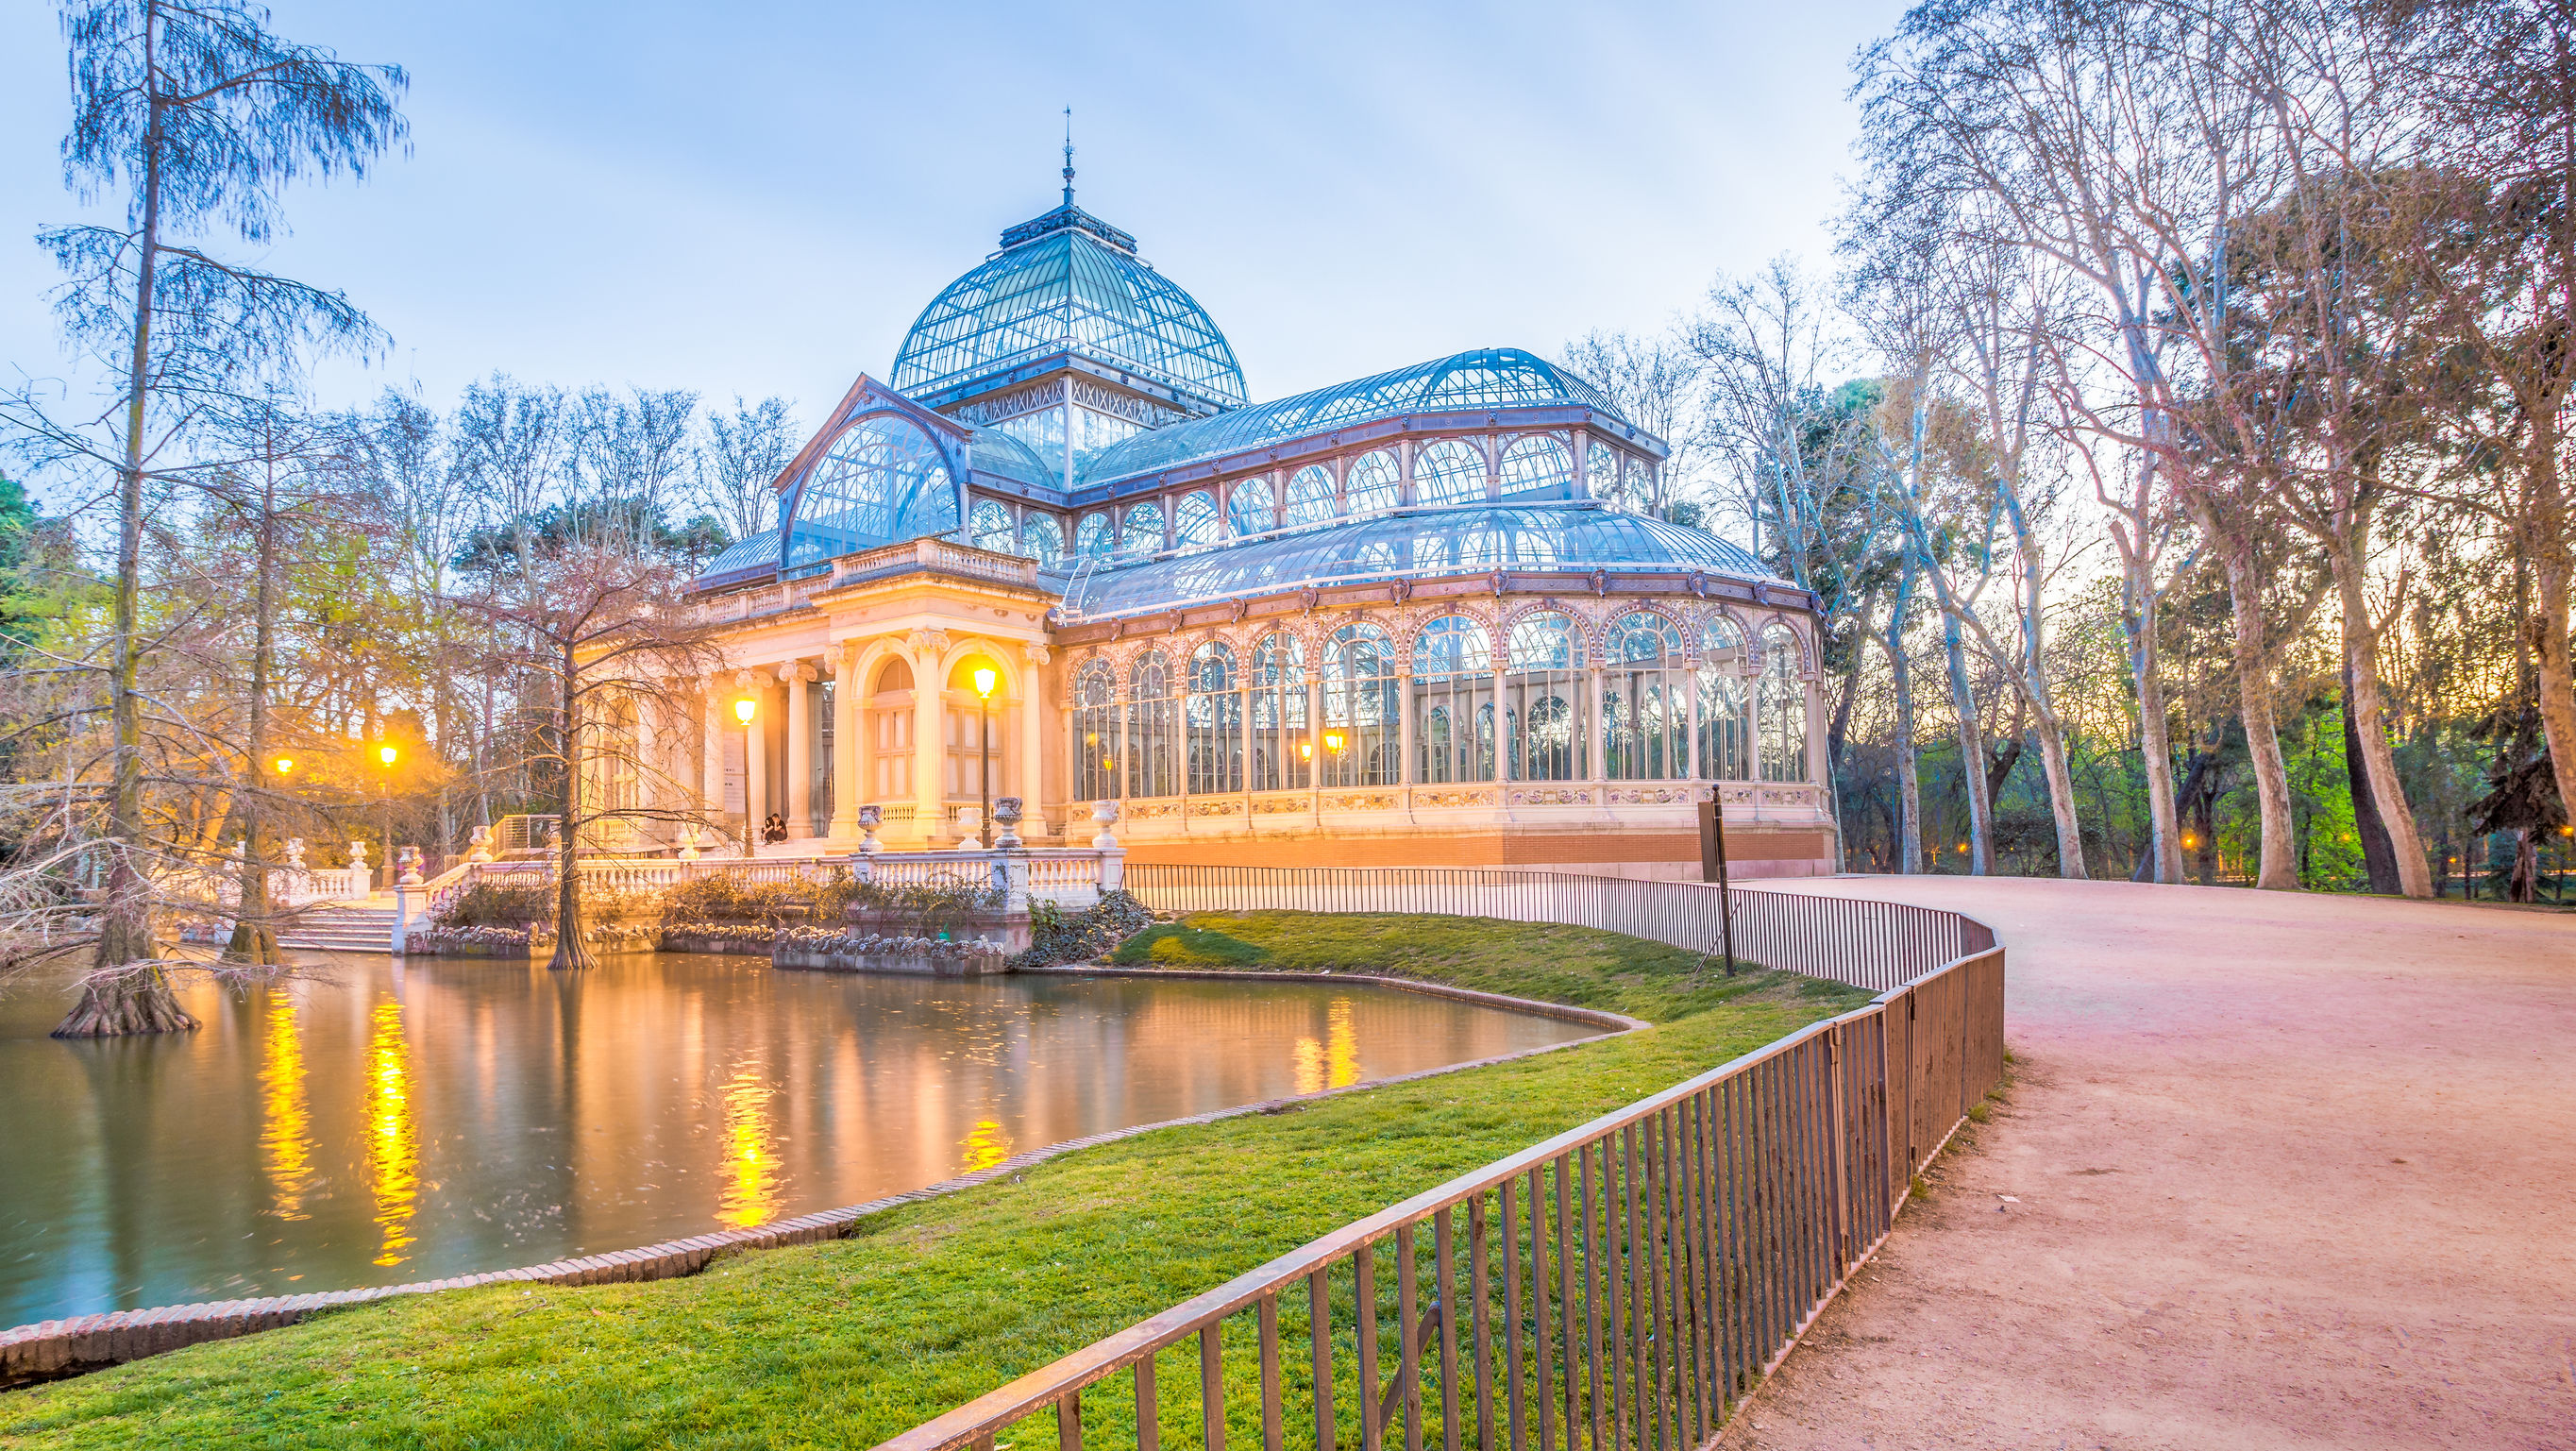 Crystal Palace at blue hour